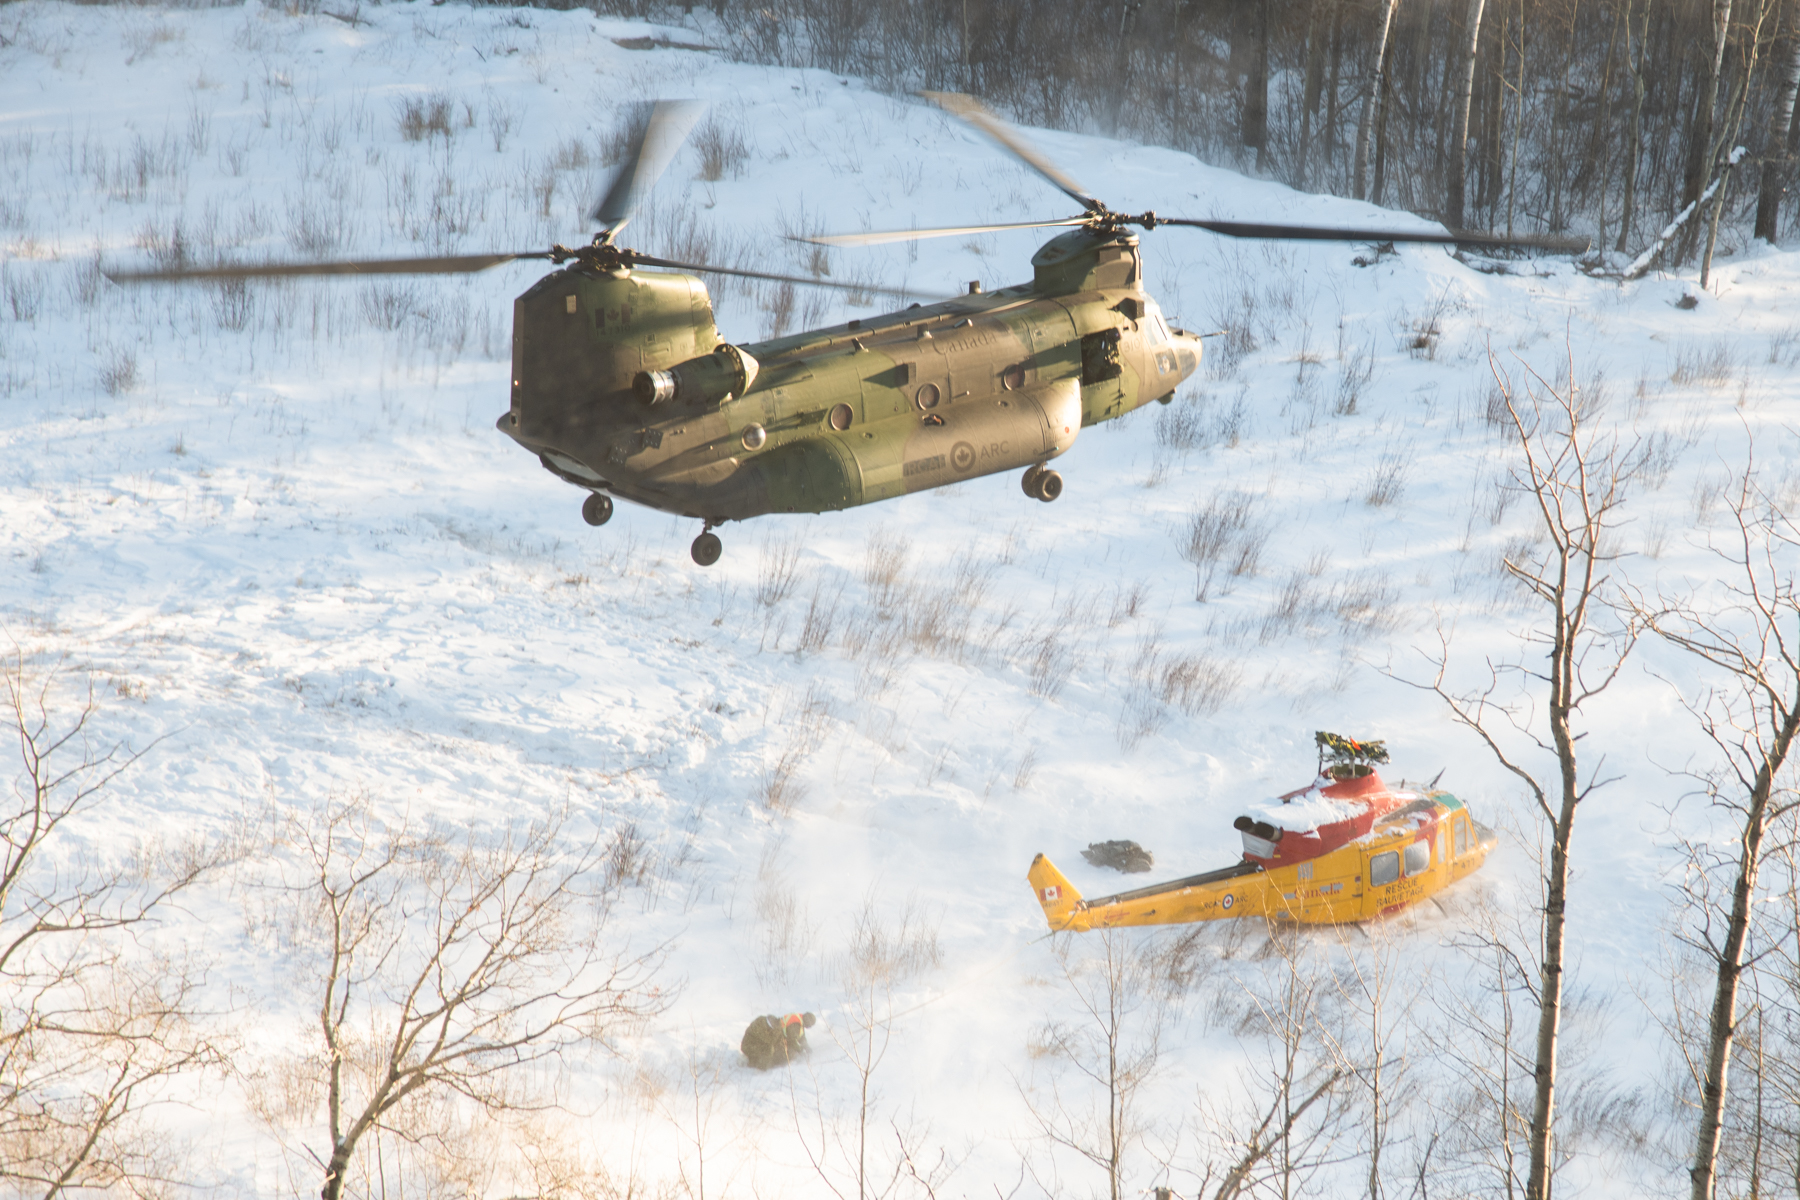 The Chinook helicopter prepares to lift the damaged Griffon off the ground. Behind the Griffon, military personnel hold a drogue parachute, attached to the Griffon's tail, steady in the downdraft from the Chinook's blades. PHOTO: Master Corporal Amy Martin, AE05-2019-0007-030